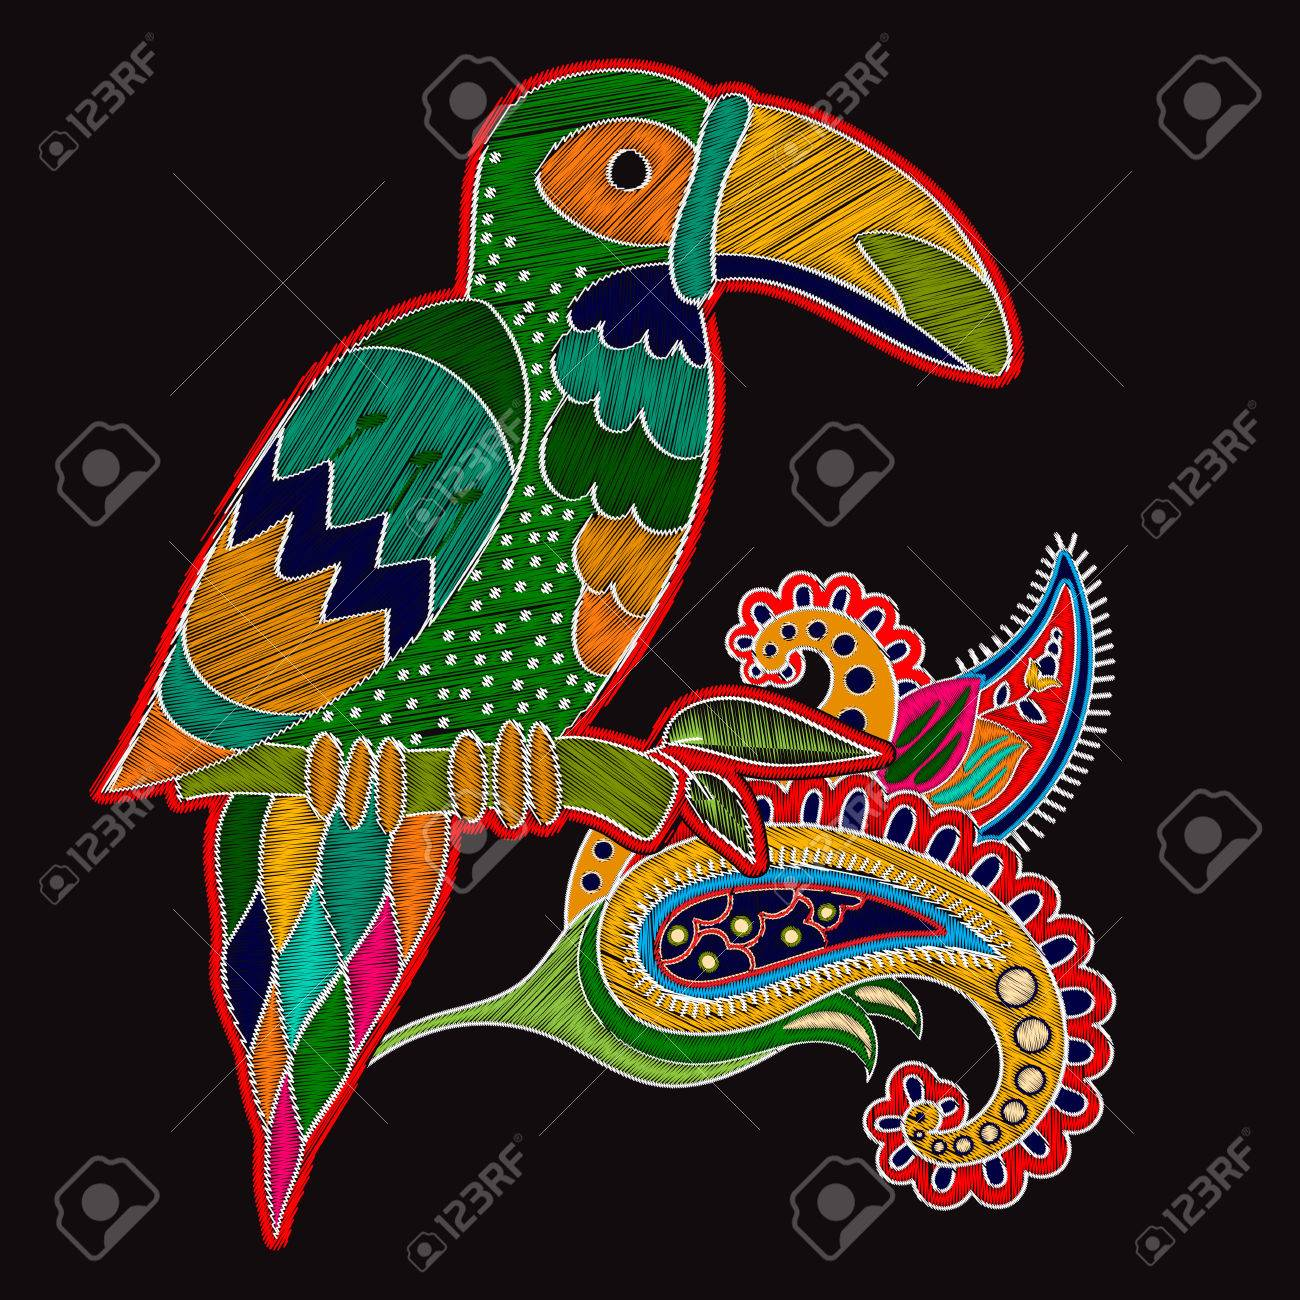 Embroidery Oriental Print With Big Bird Floral Folk Template Toucan And Paisley Flower On